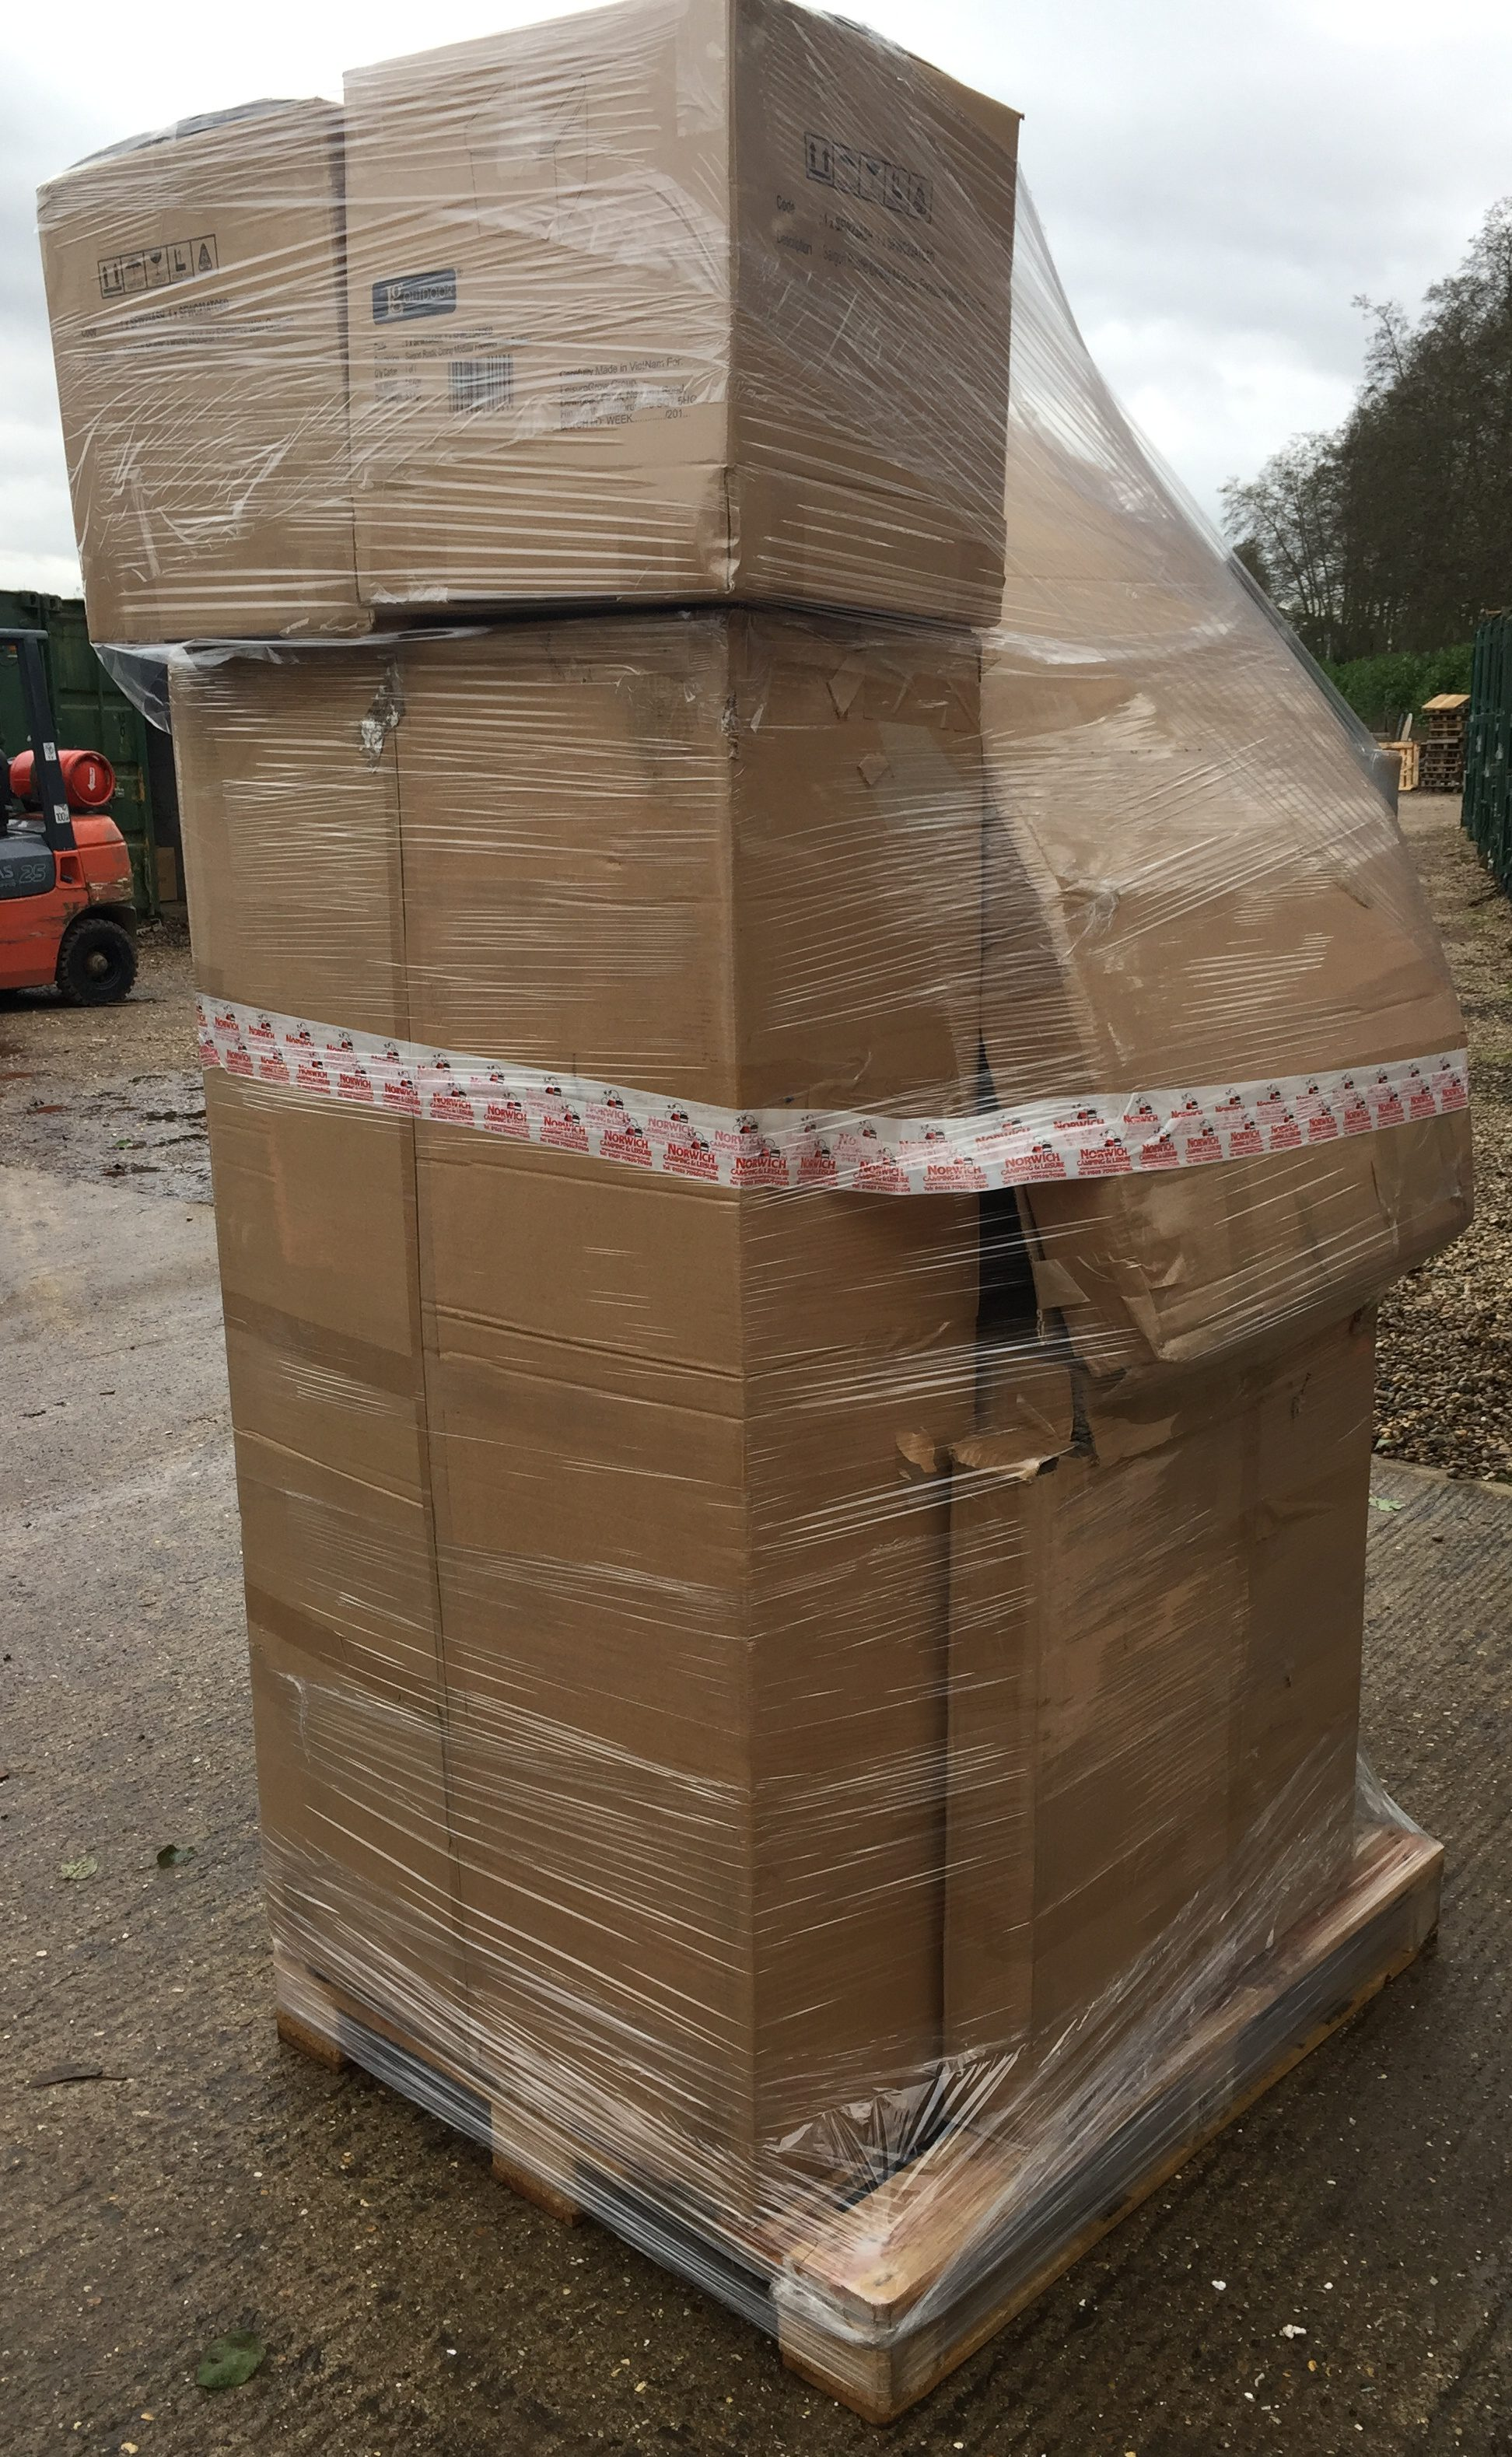 Pallet Delivery